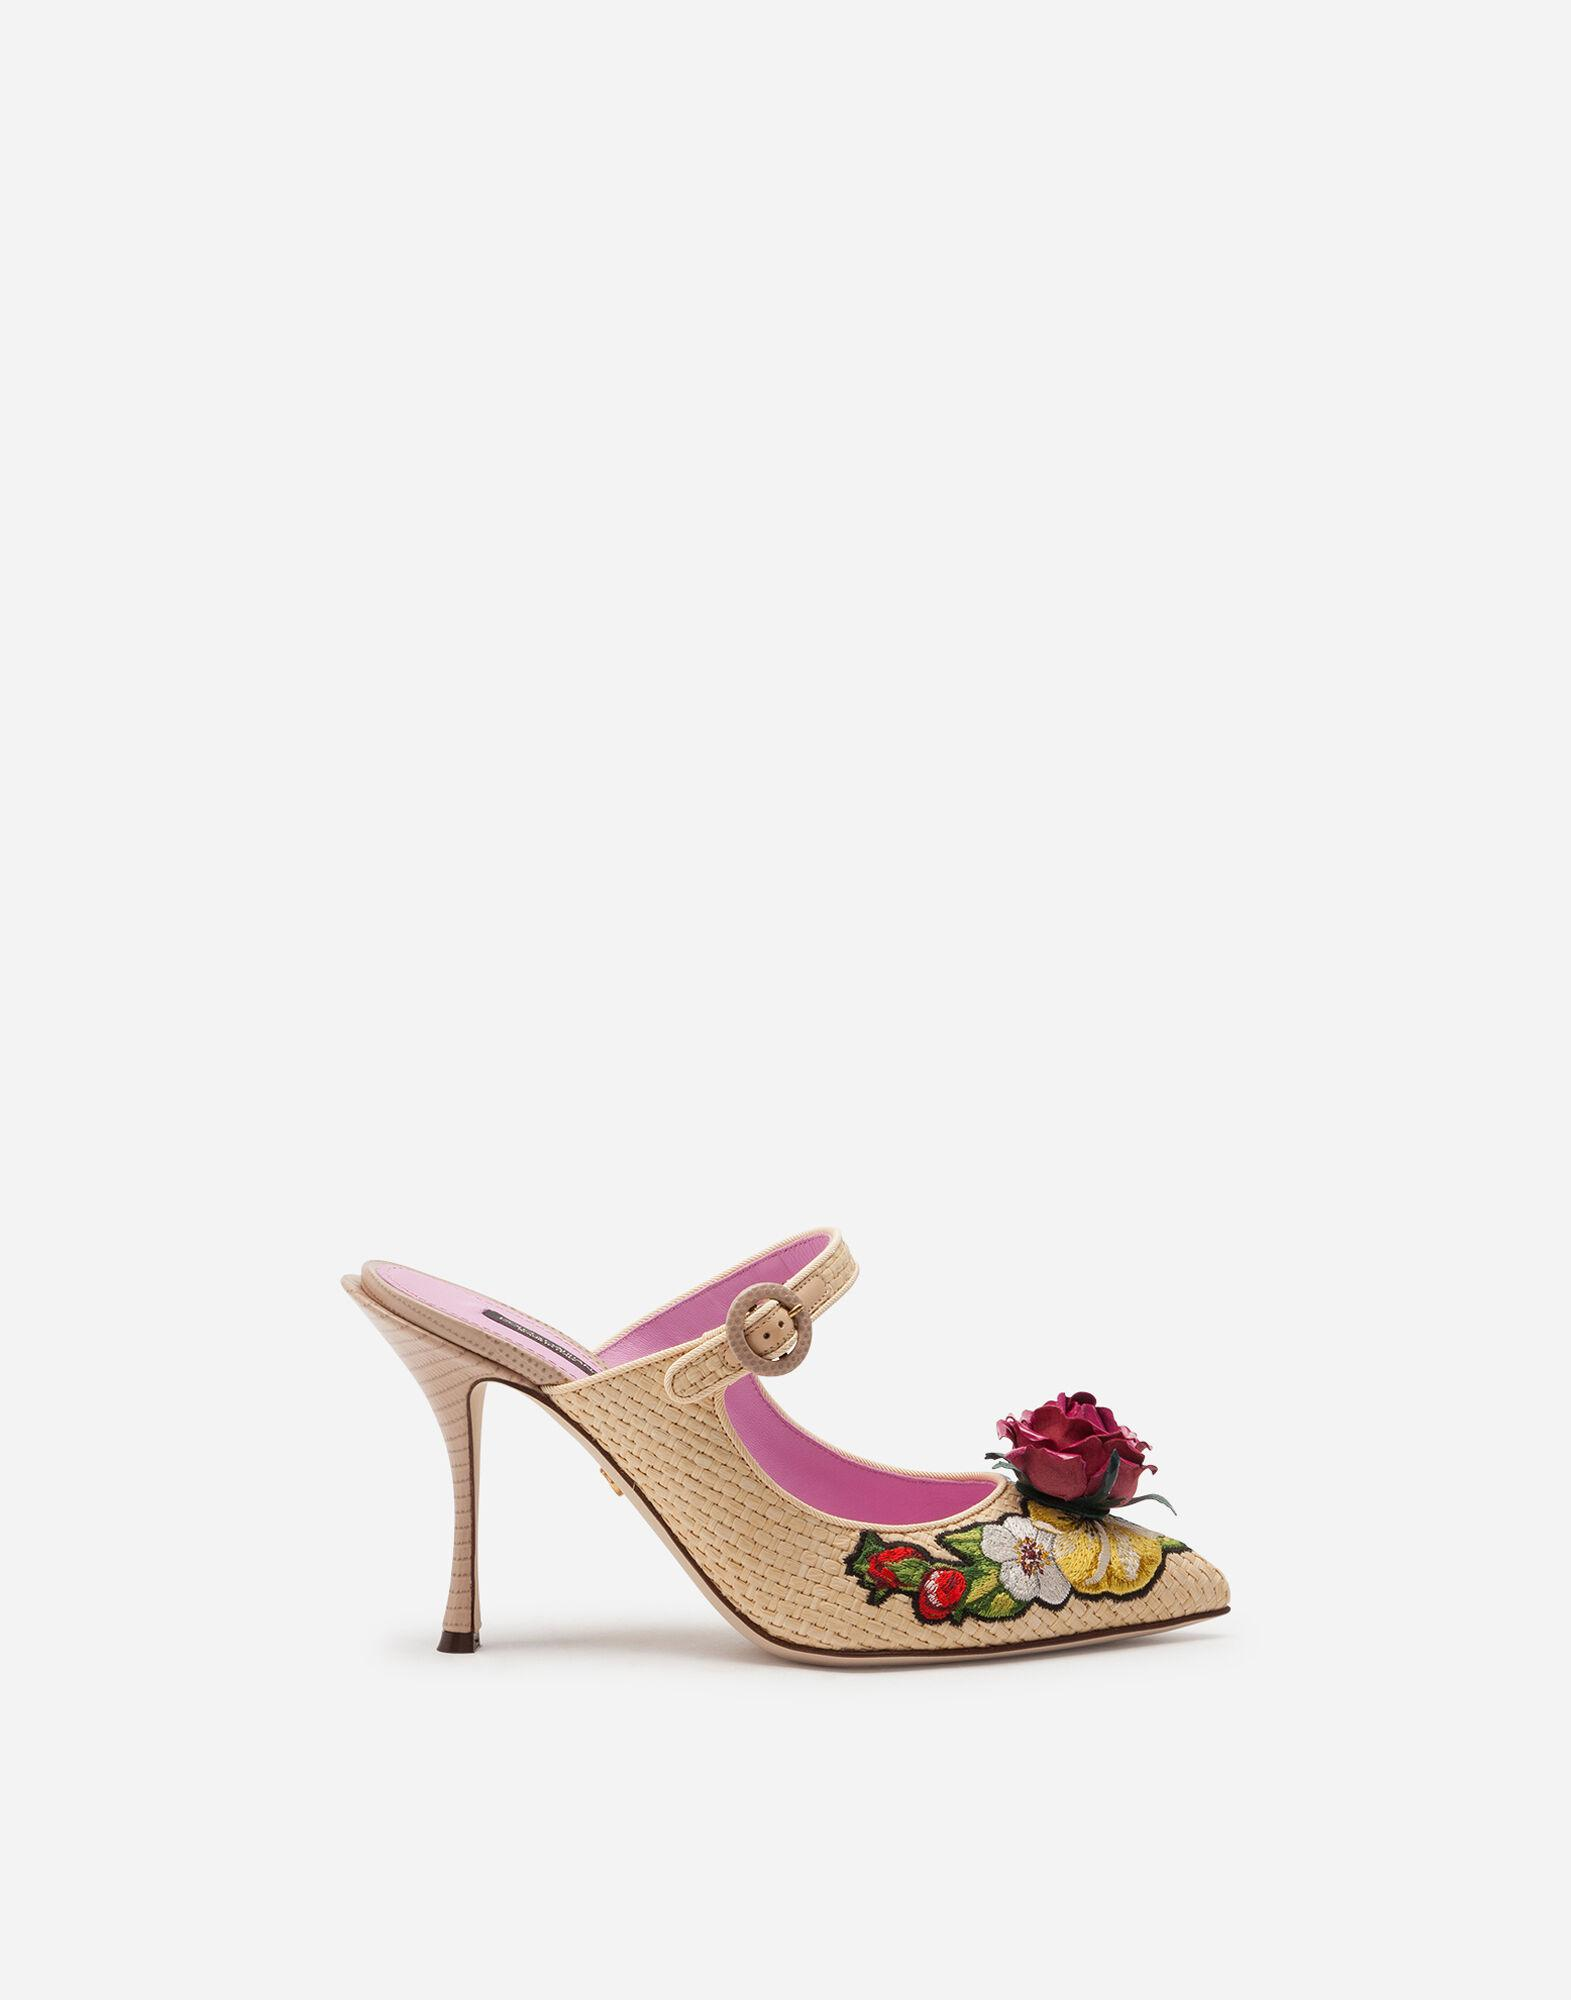 Braided raffia mules with floral embroidery